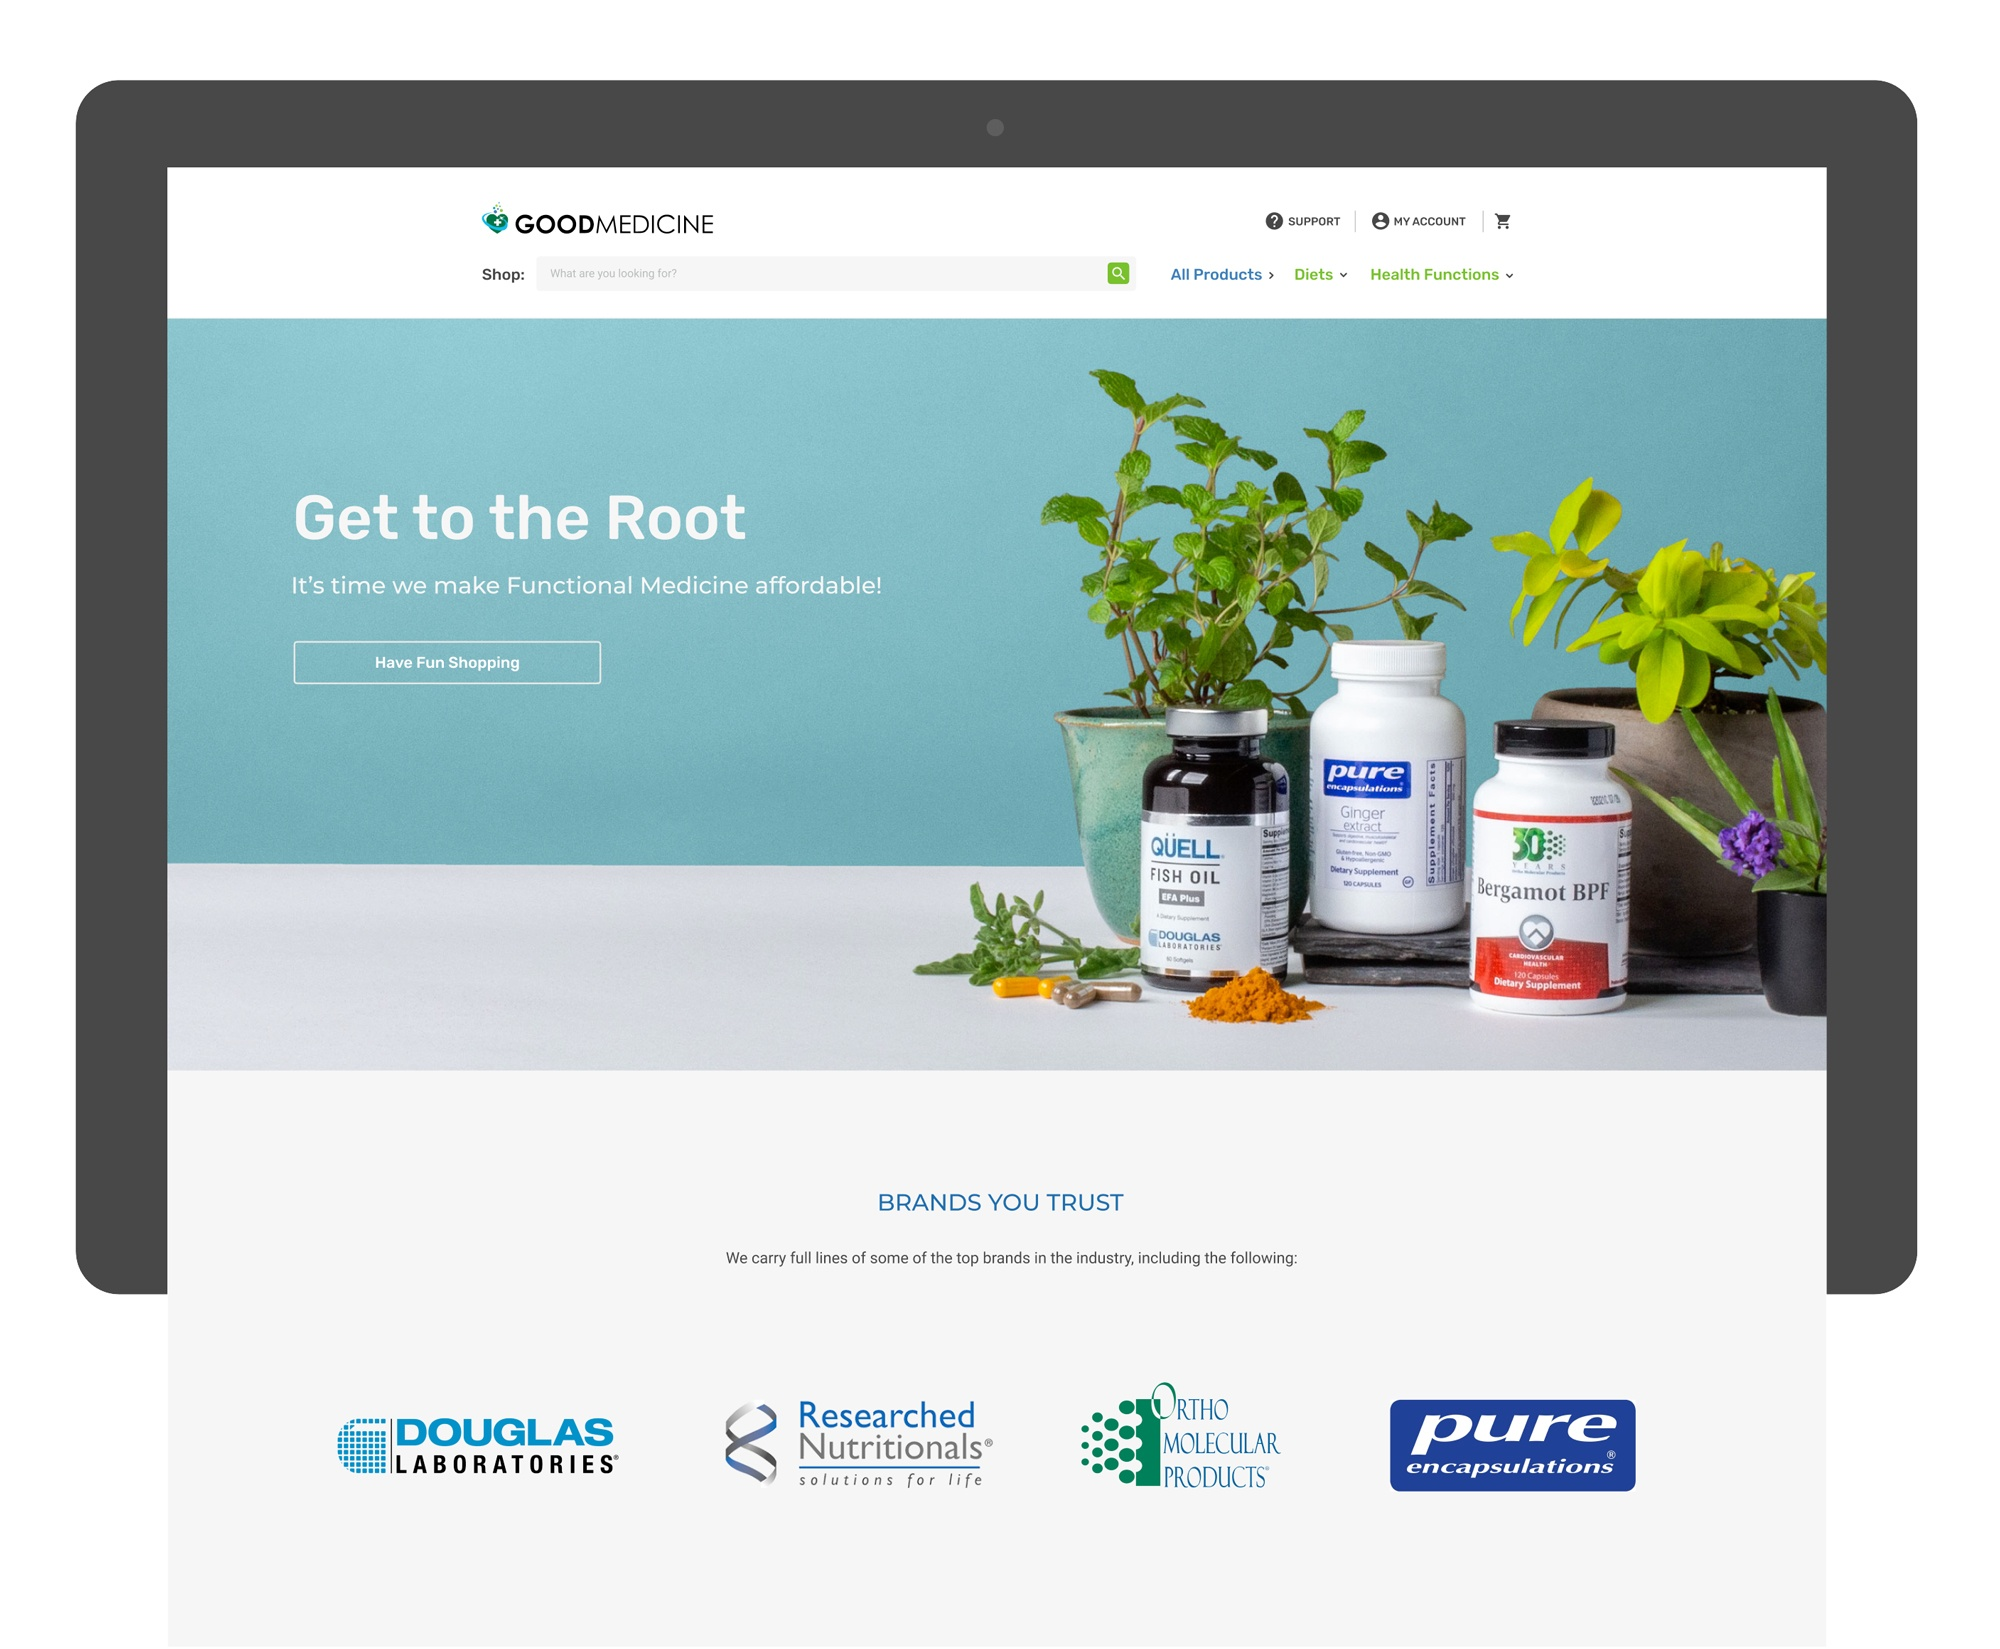 A screenshot of the homepage of thisisgoodmedicine.com